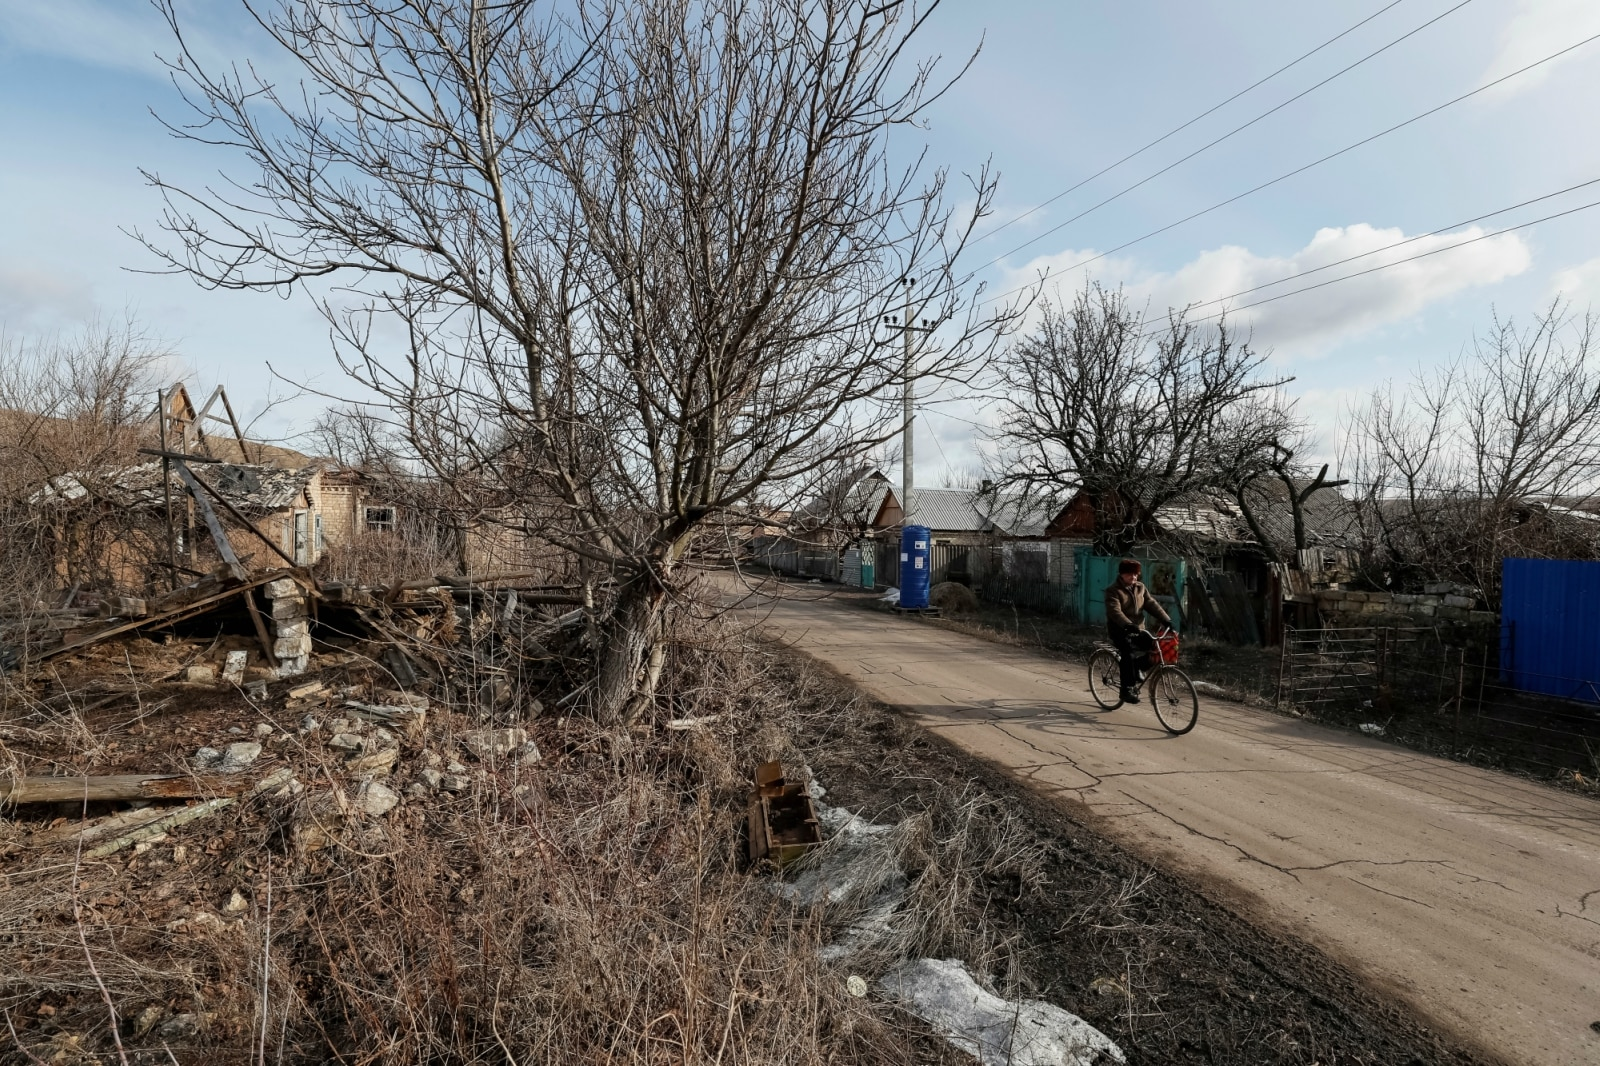 A local resident rides a bicycle past the houses destroyed by shelling in the village of Zaitseve, Ukraine, February 22, 2019. There are not many people left in Zaitseve, a village on the front line that divides Ukraine between government-controlled territory and the enclave controlled by Russian-backed separatist forces. Troops are stationed in trenches outside Zaitseve and government trucks risk rebel fire to bring bread, coal, firewood and other goods along a dirt road. REUTERS/Gleb Garanich